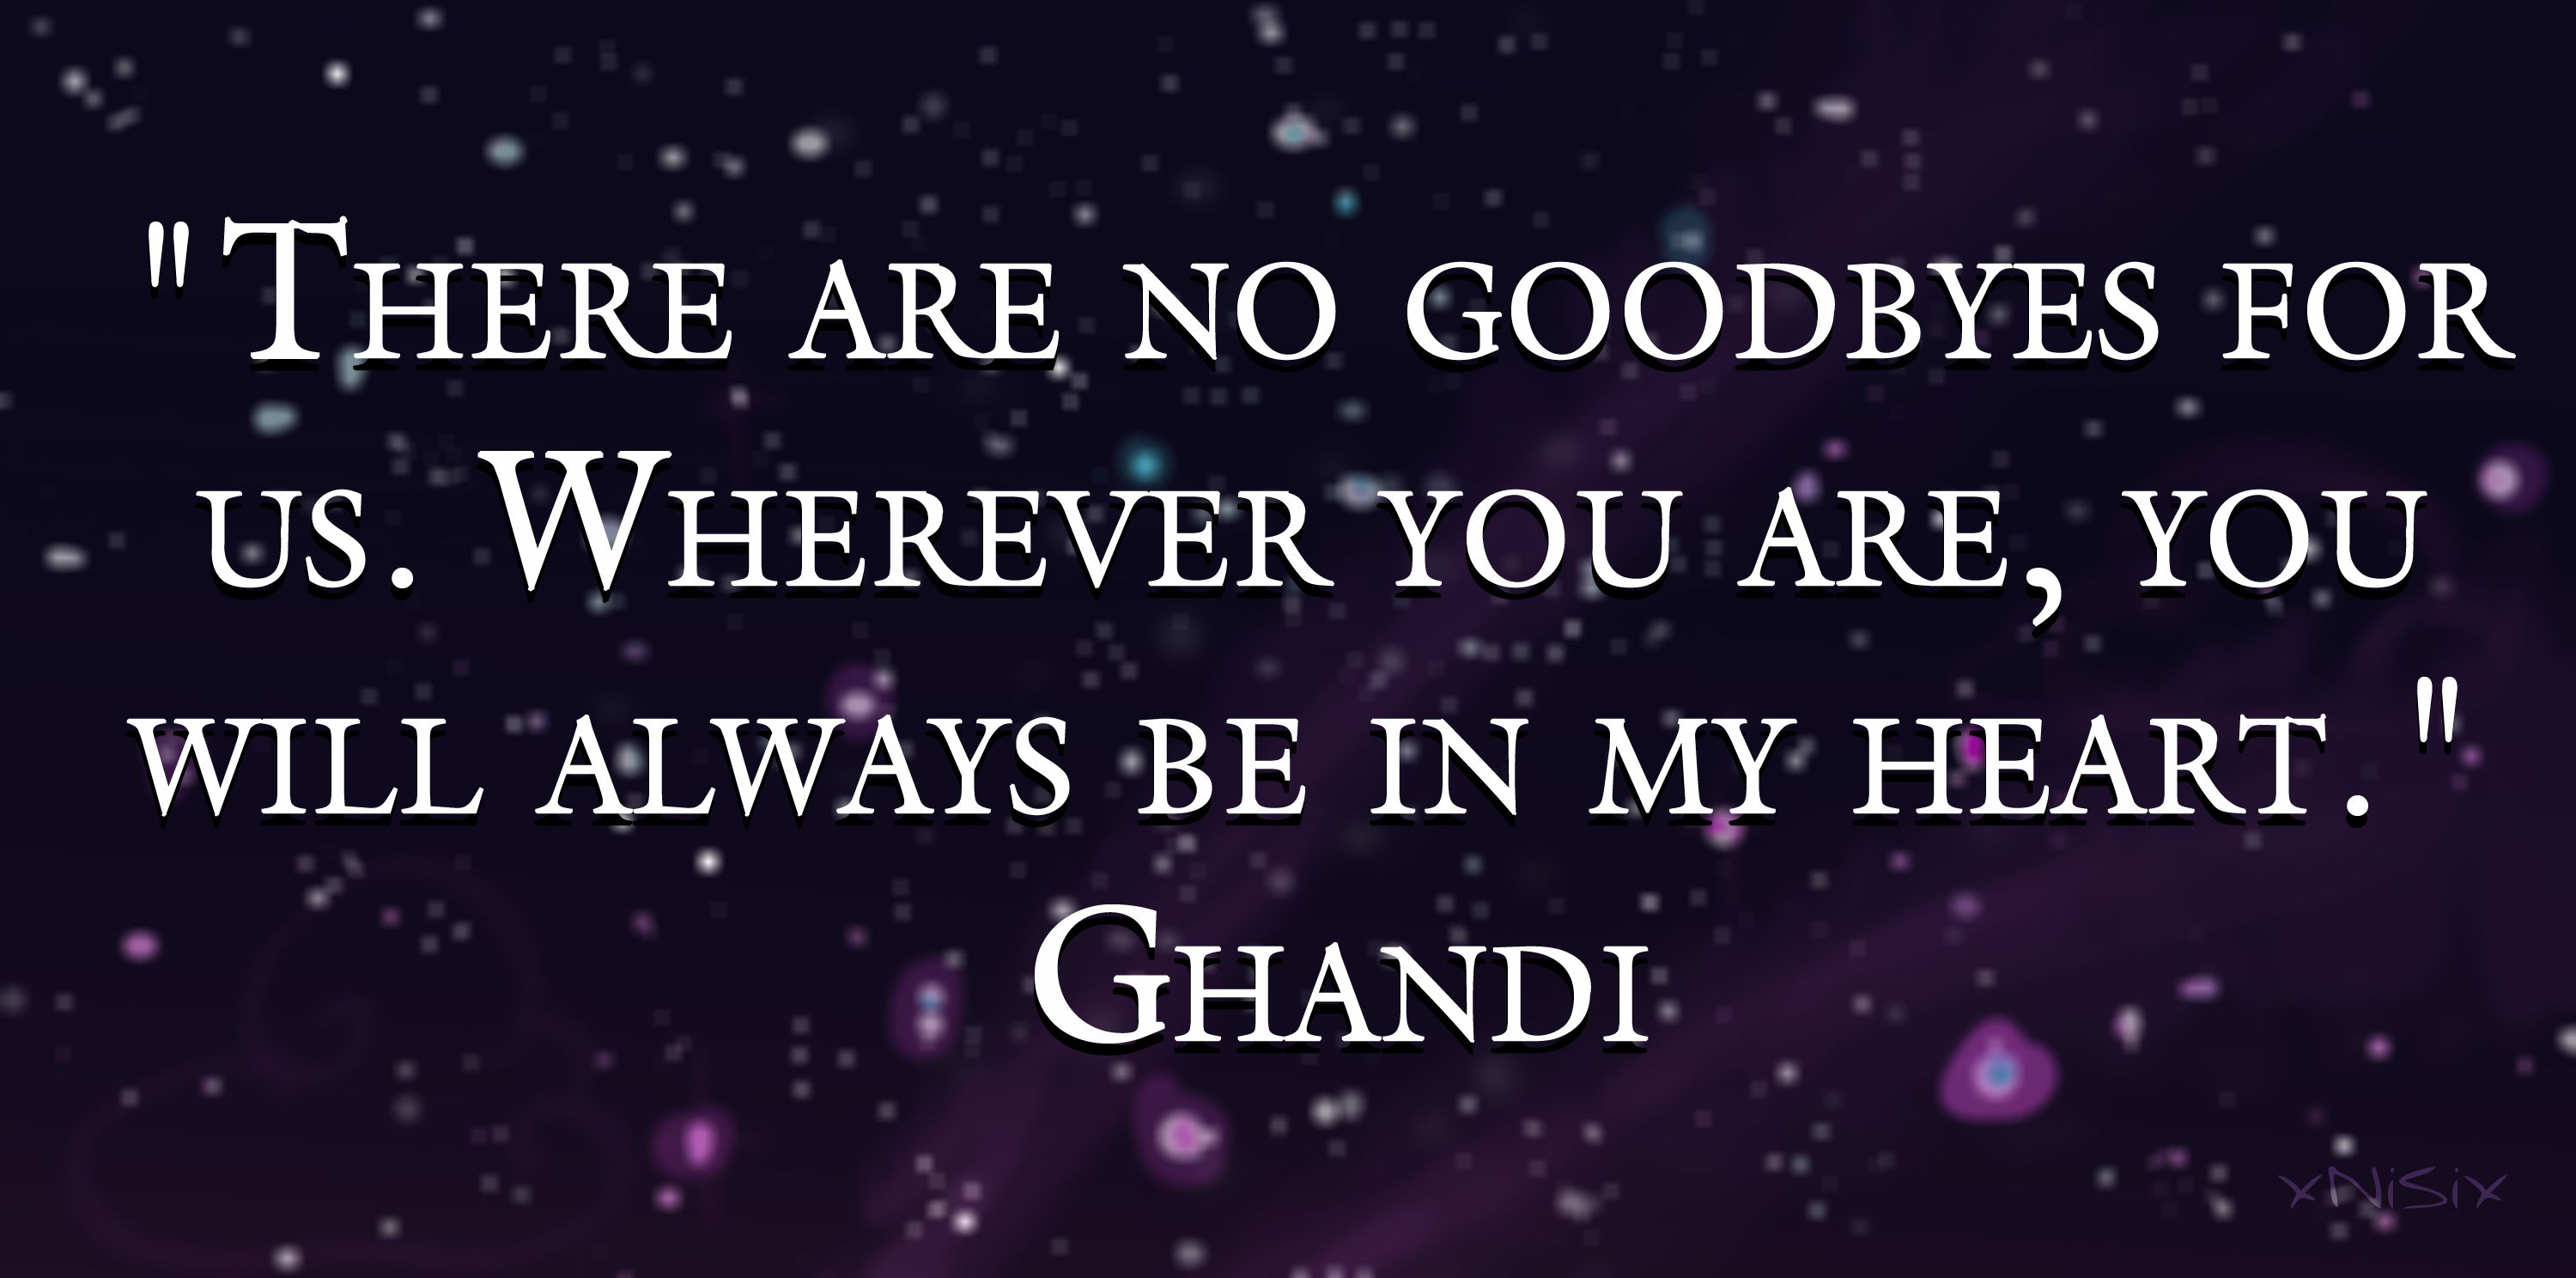 There Are No Goodbyes For Us Wherever You Are You Will Always Be